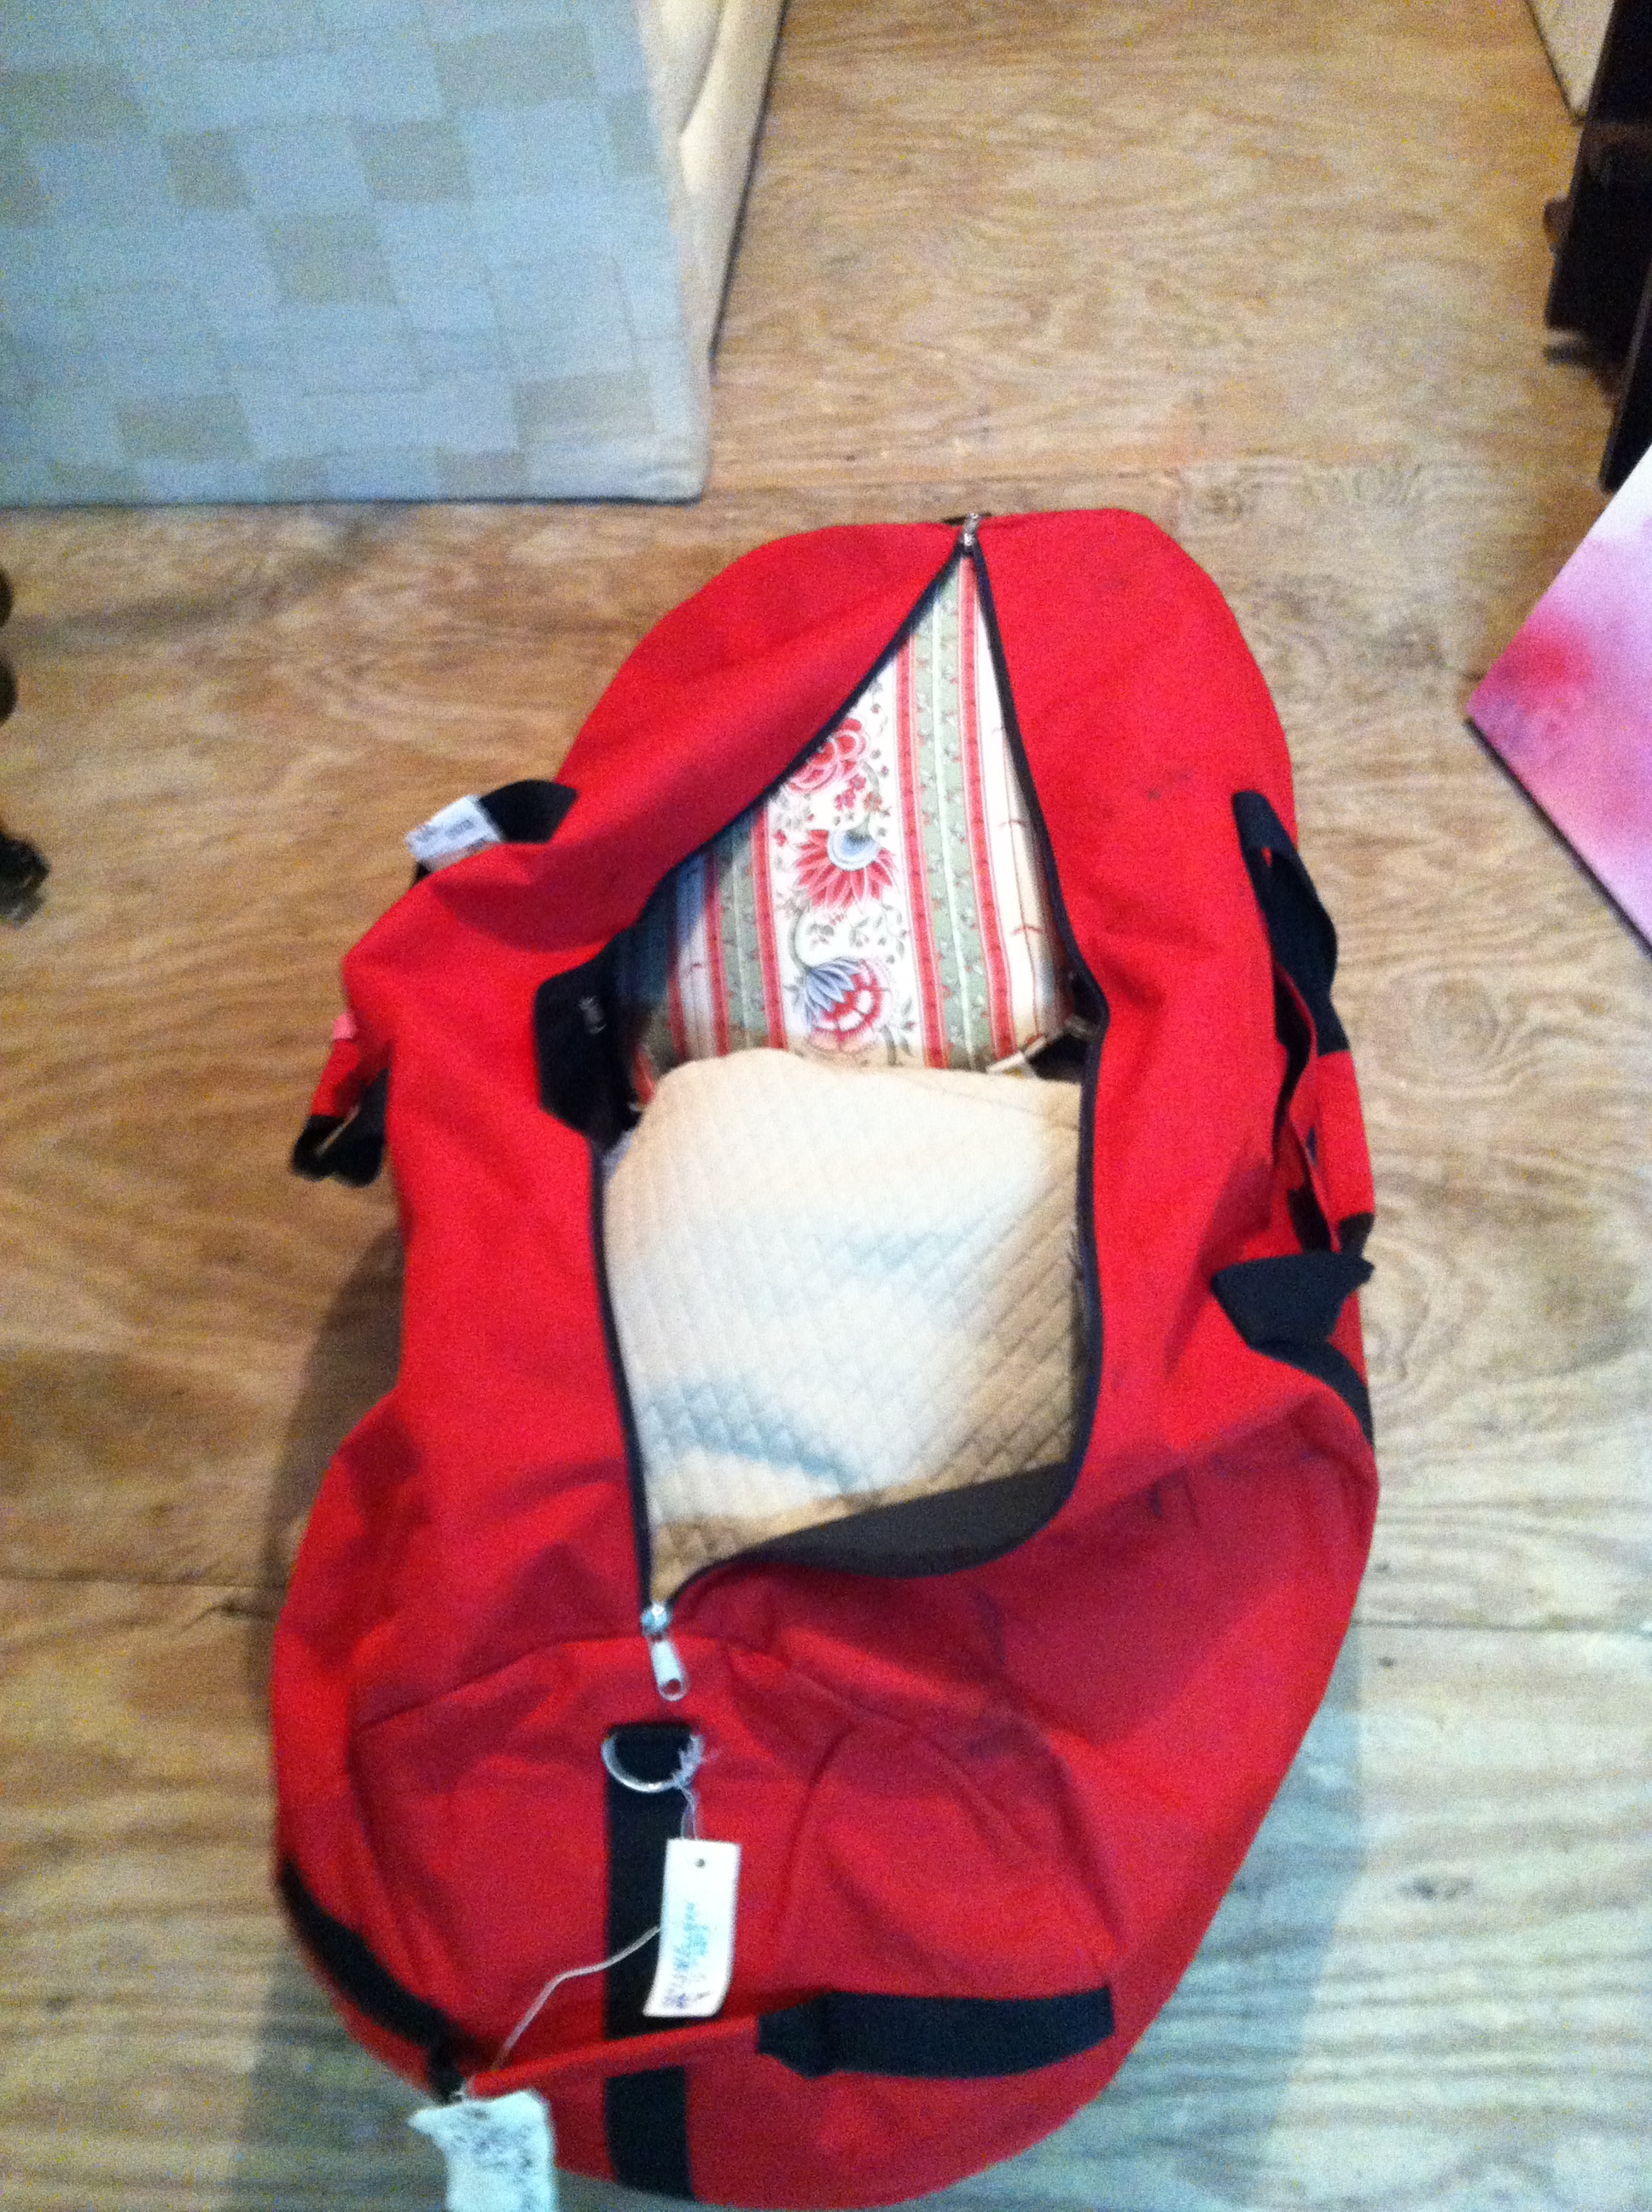 0413: Large Red Bag- Pillows and Blankets inside